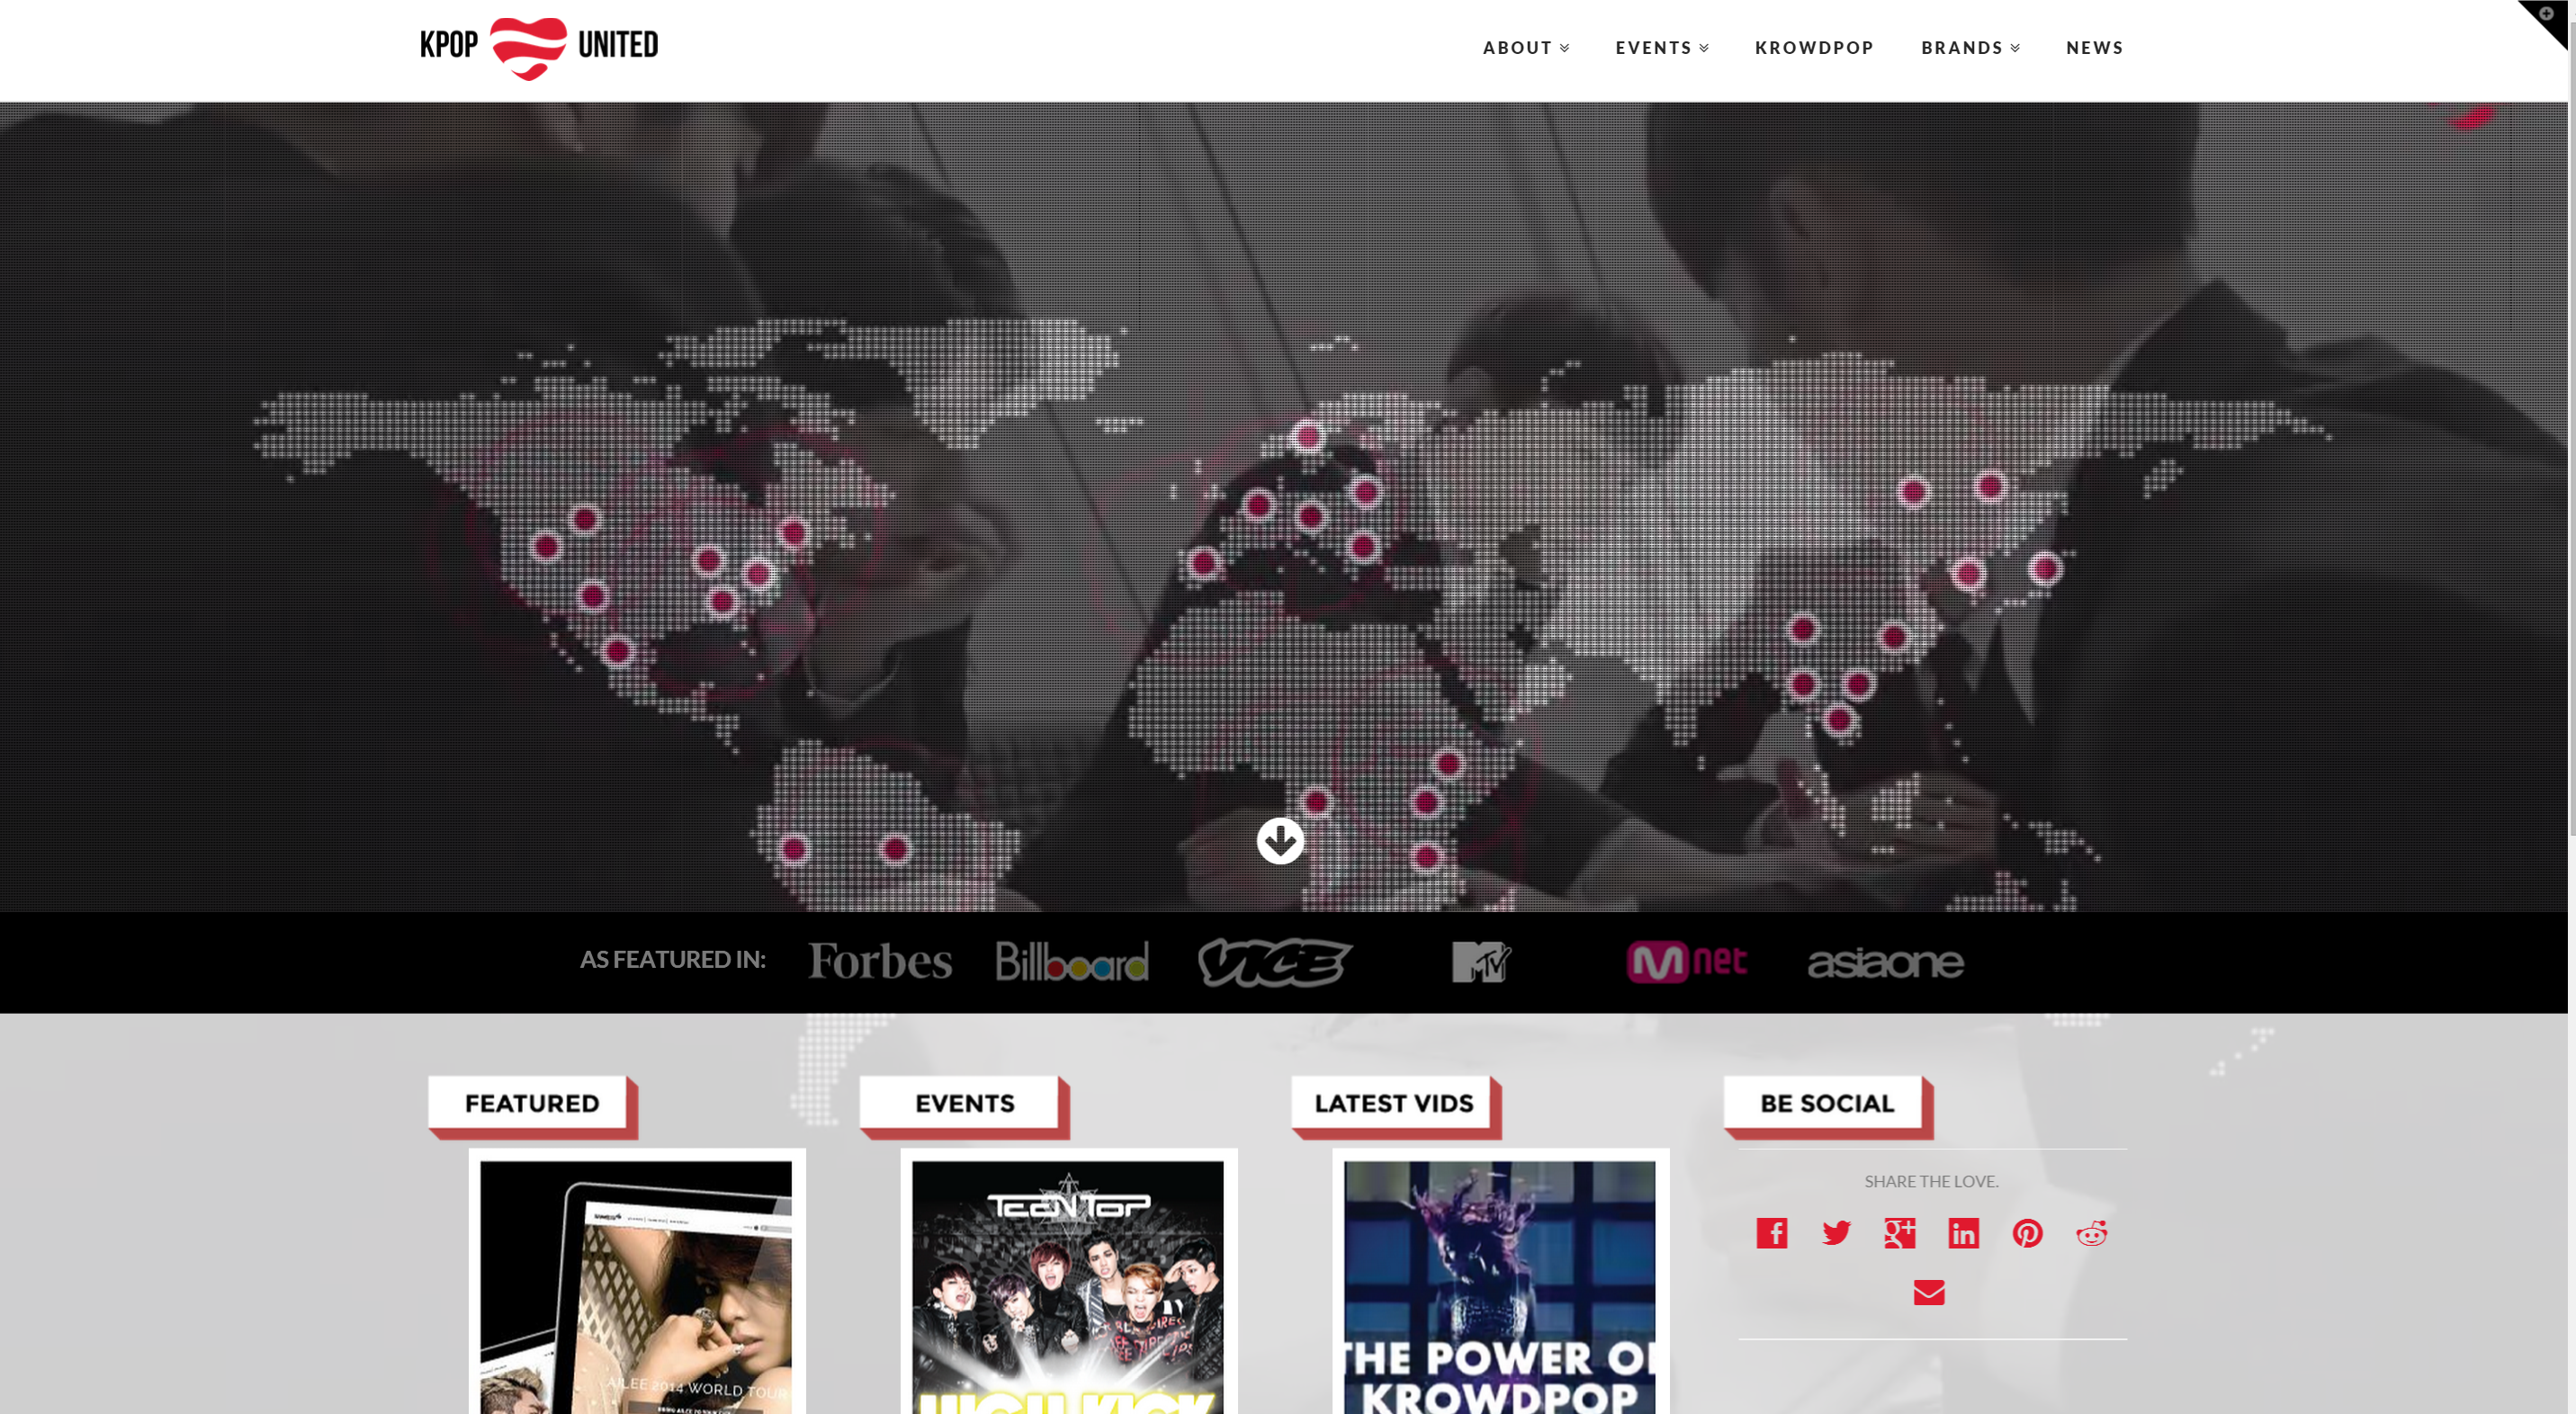 KPOP UNITED   A K Pop Community For the Fans  By the Fans